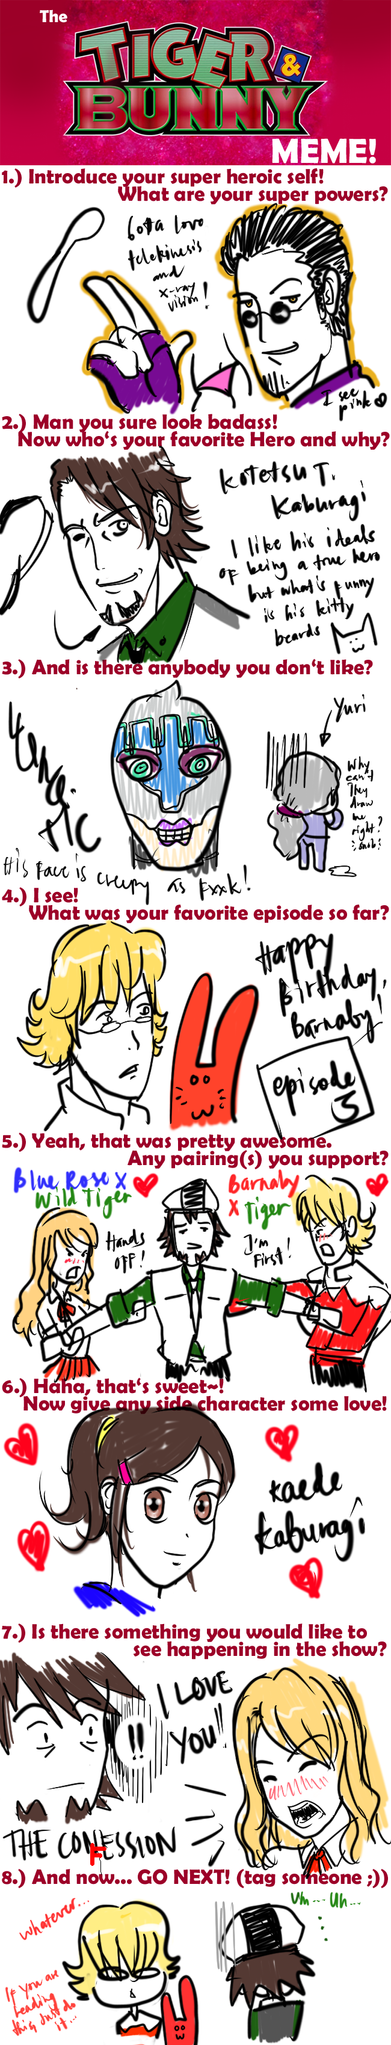 Tiger and Bunny Meme by hentist